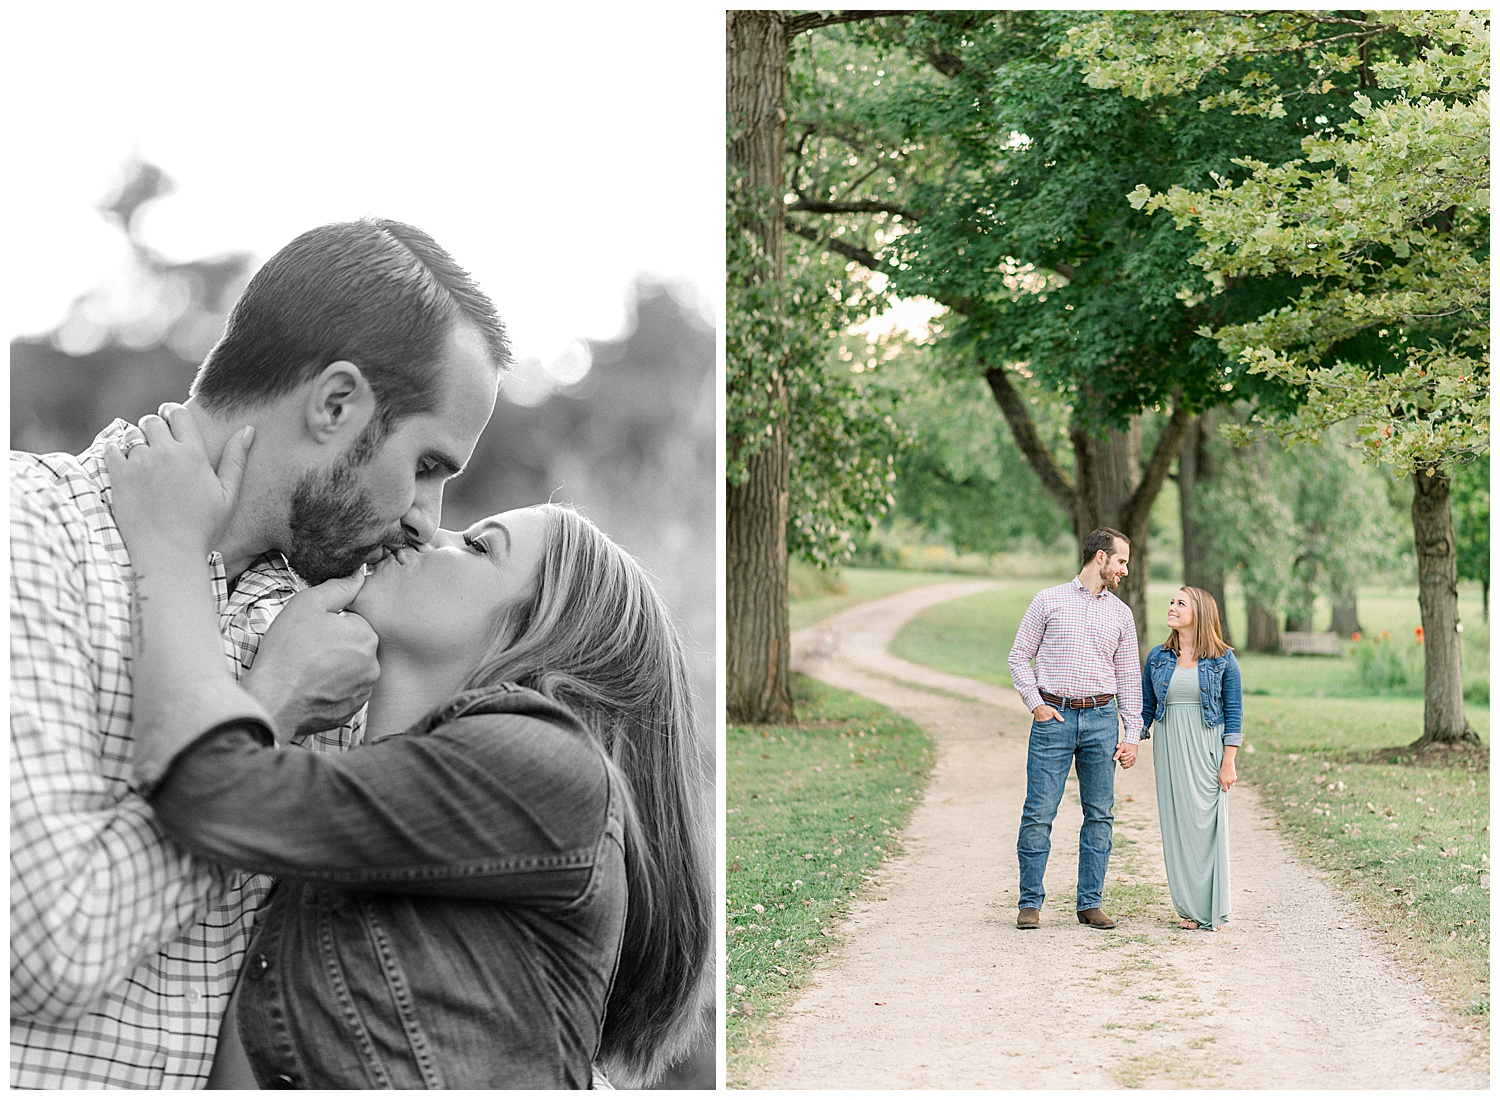 Cox_Arboretum_Anniversary_Session_Miamisburg_Ohio_Cassandra_Janina_Photography_Ohio_Wedding_Photographer_0274.jpg